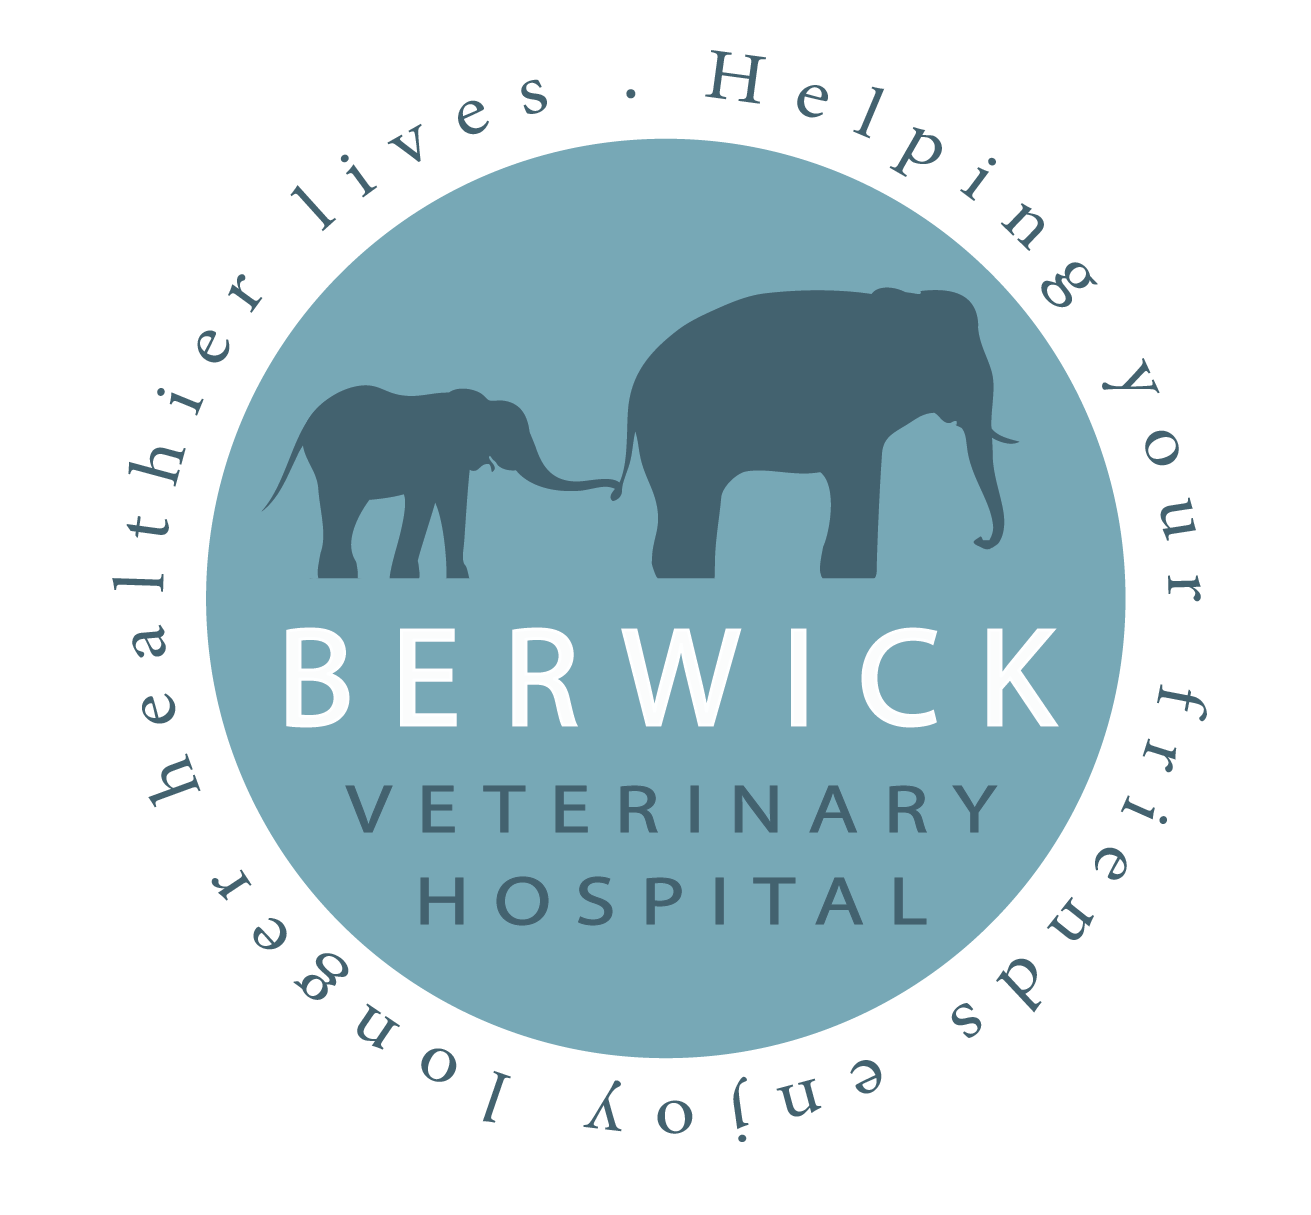 Berwick Veterinary Hospital